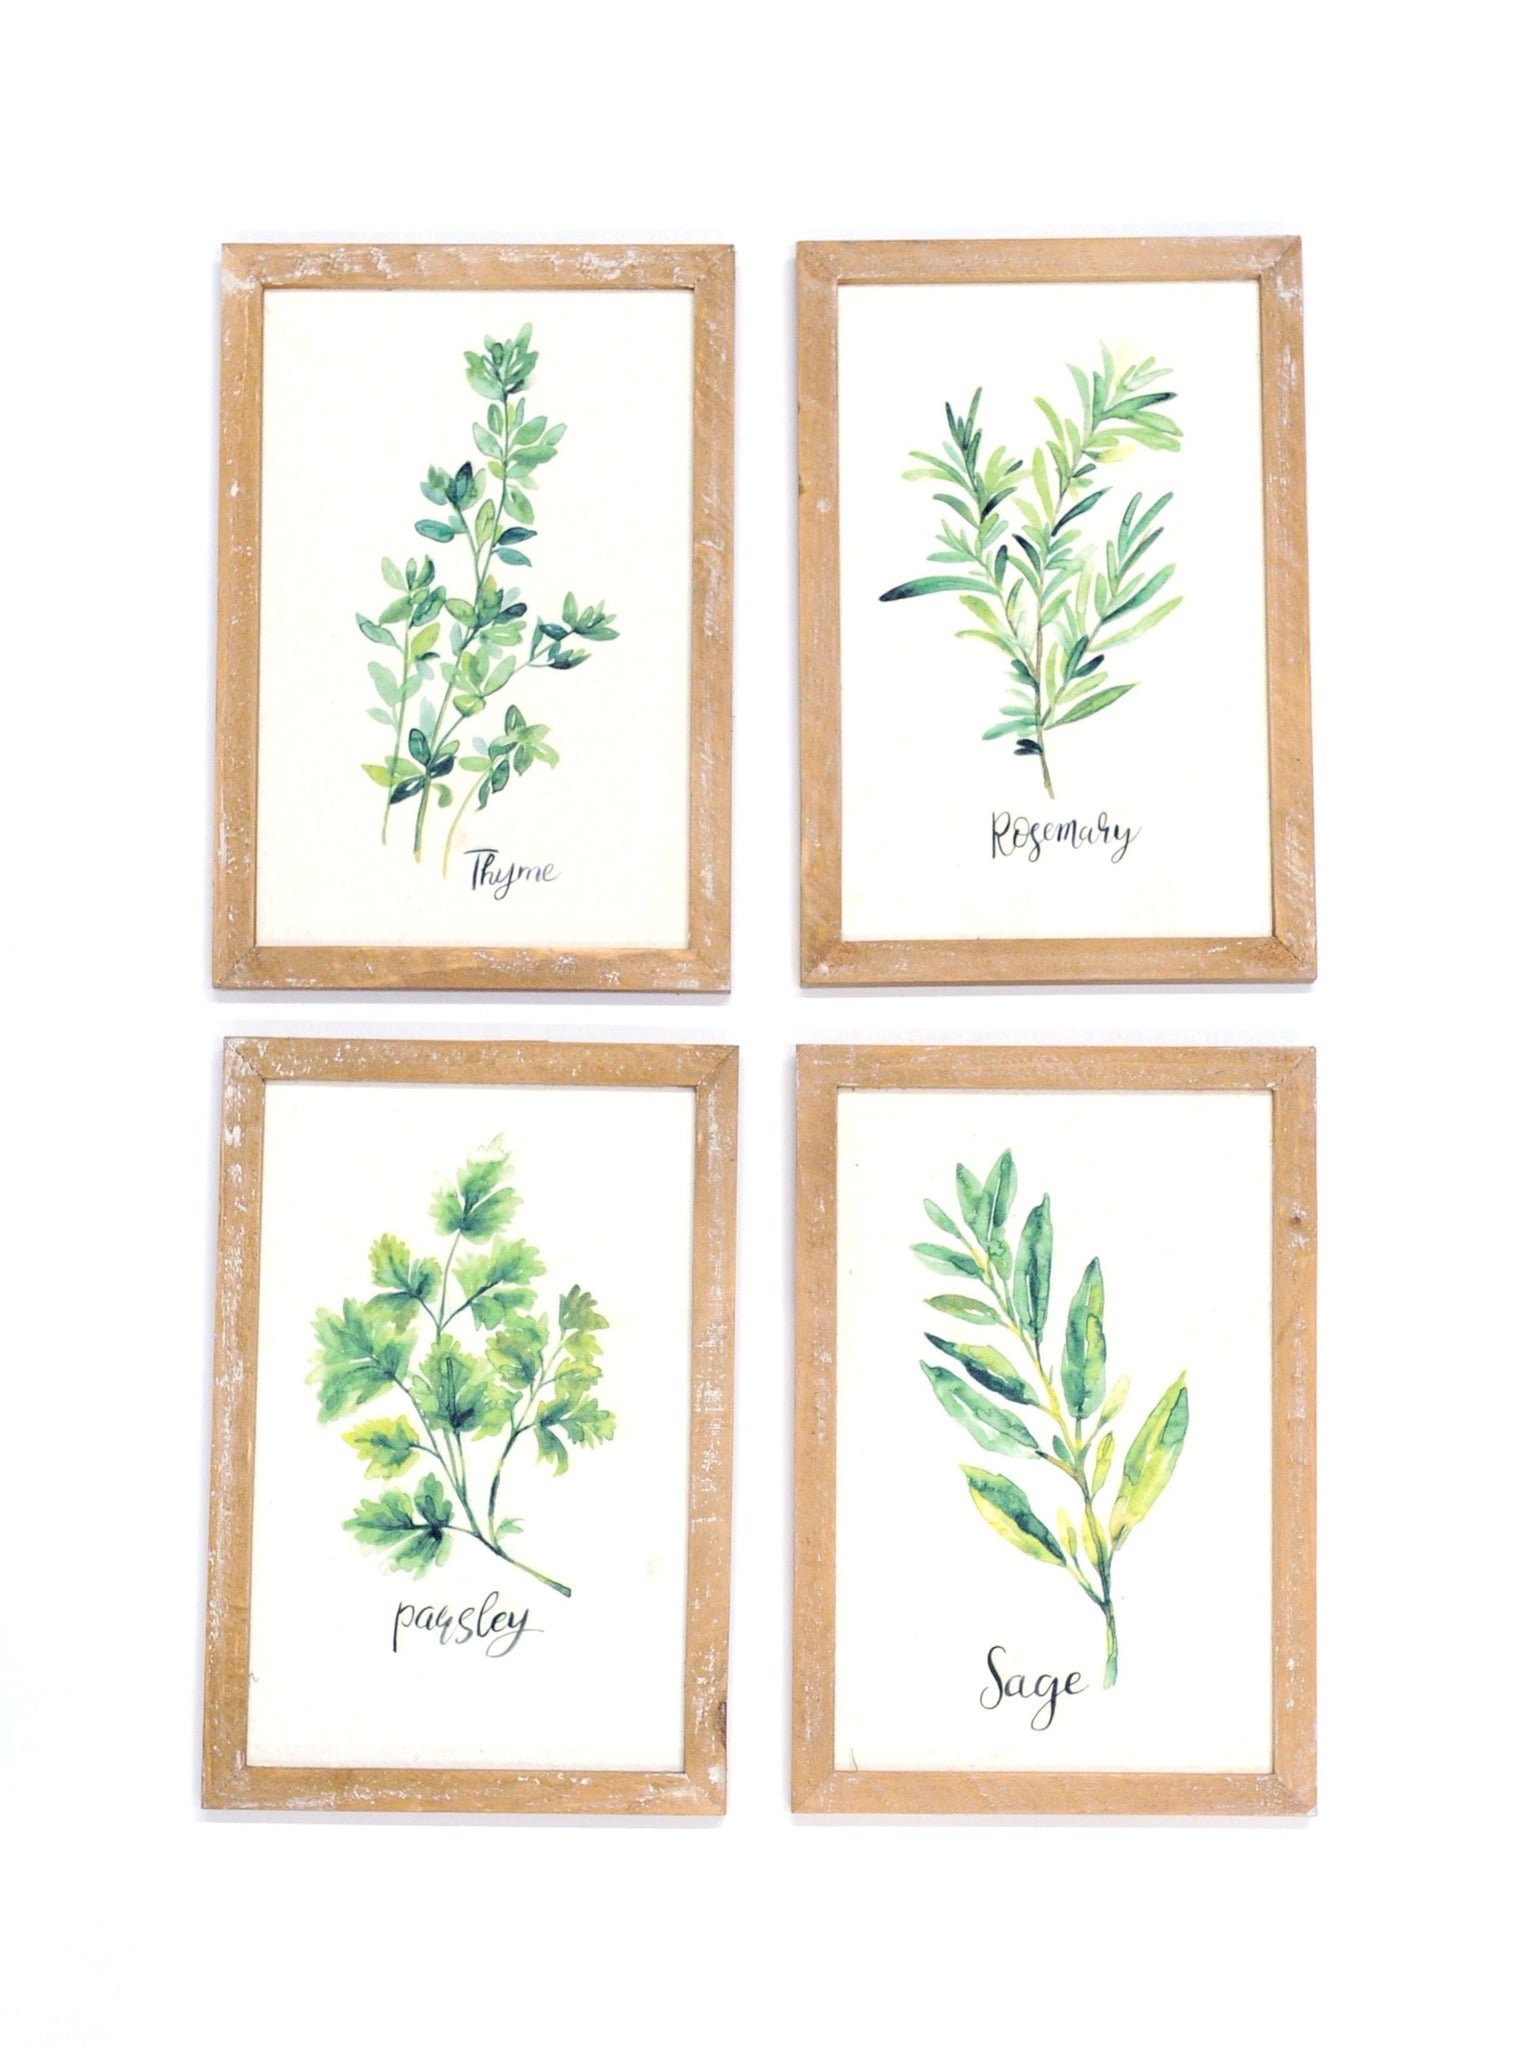 Rosemary, Parsley, Thyme, and Oregano Wall Signs